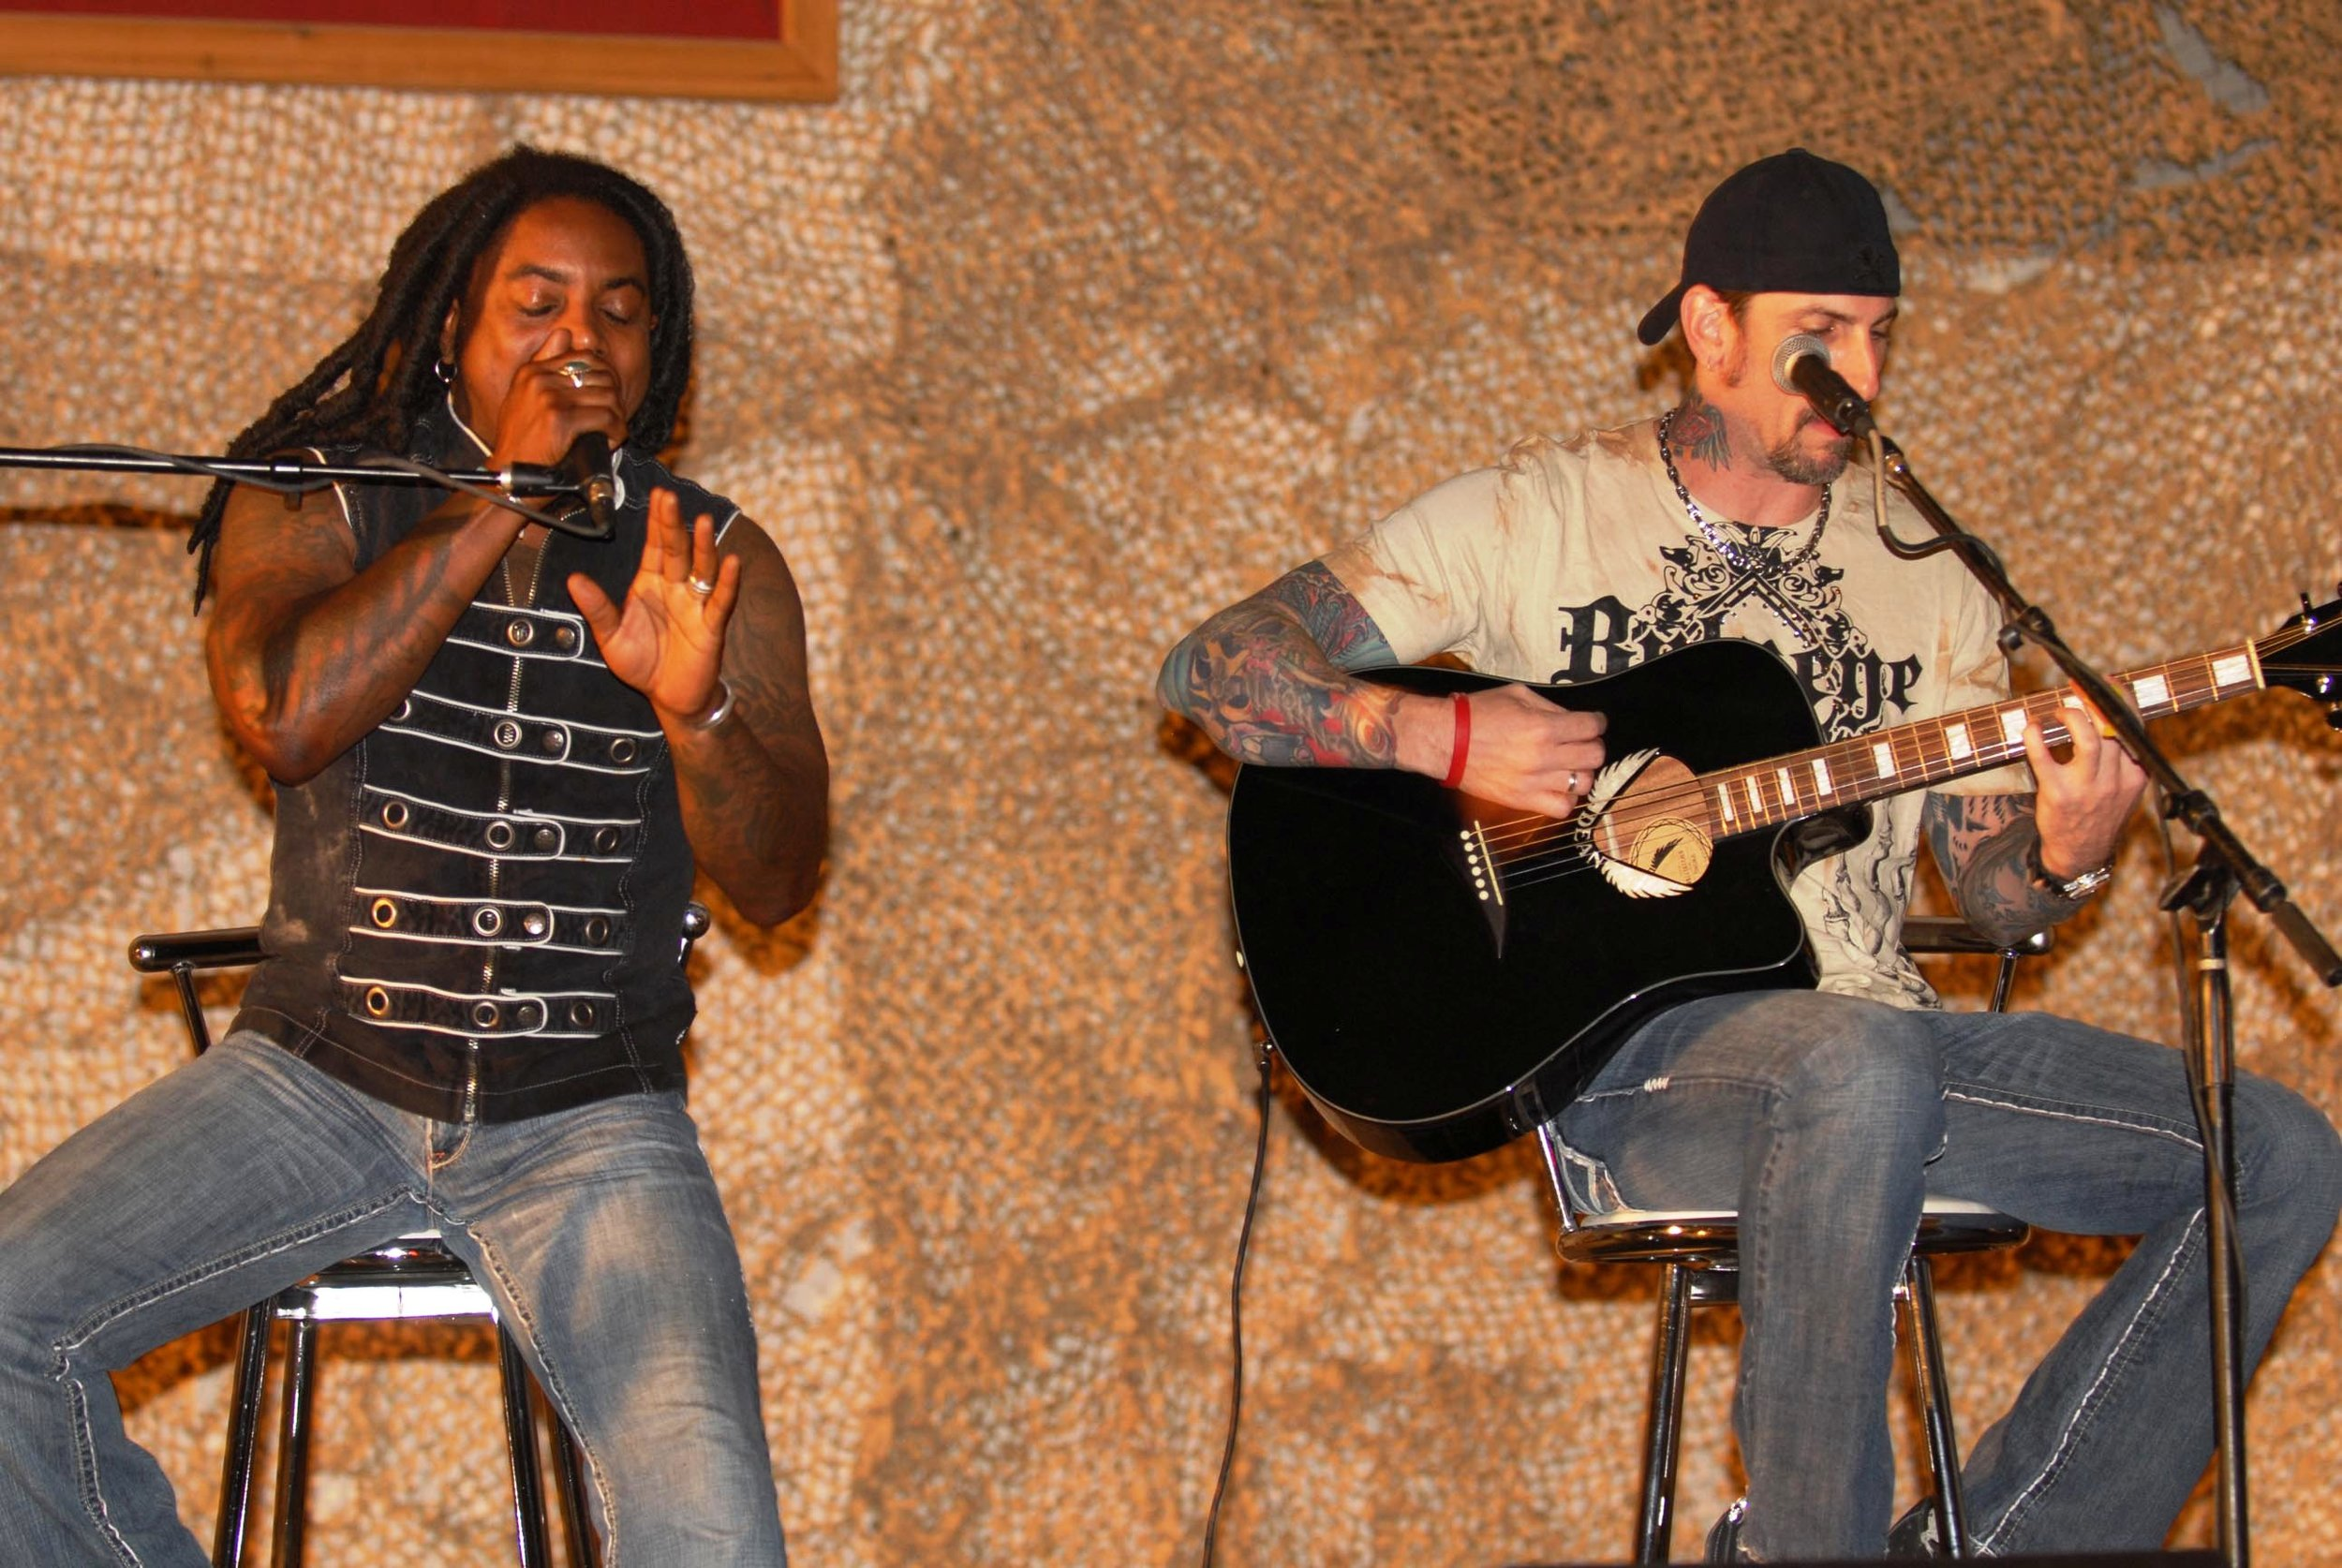 Sevendust performing at Bagram Air Base in Afghanistan, image from Department of Defense